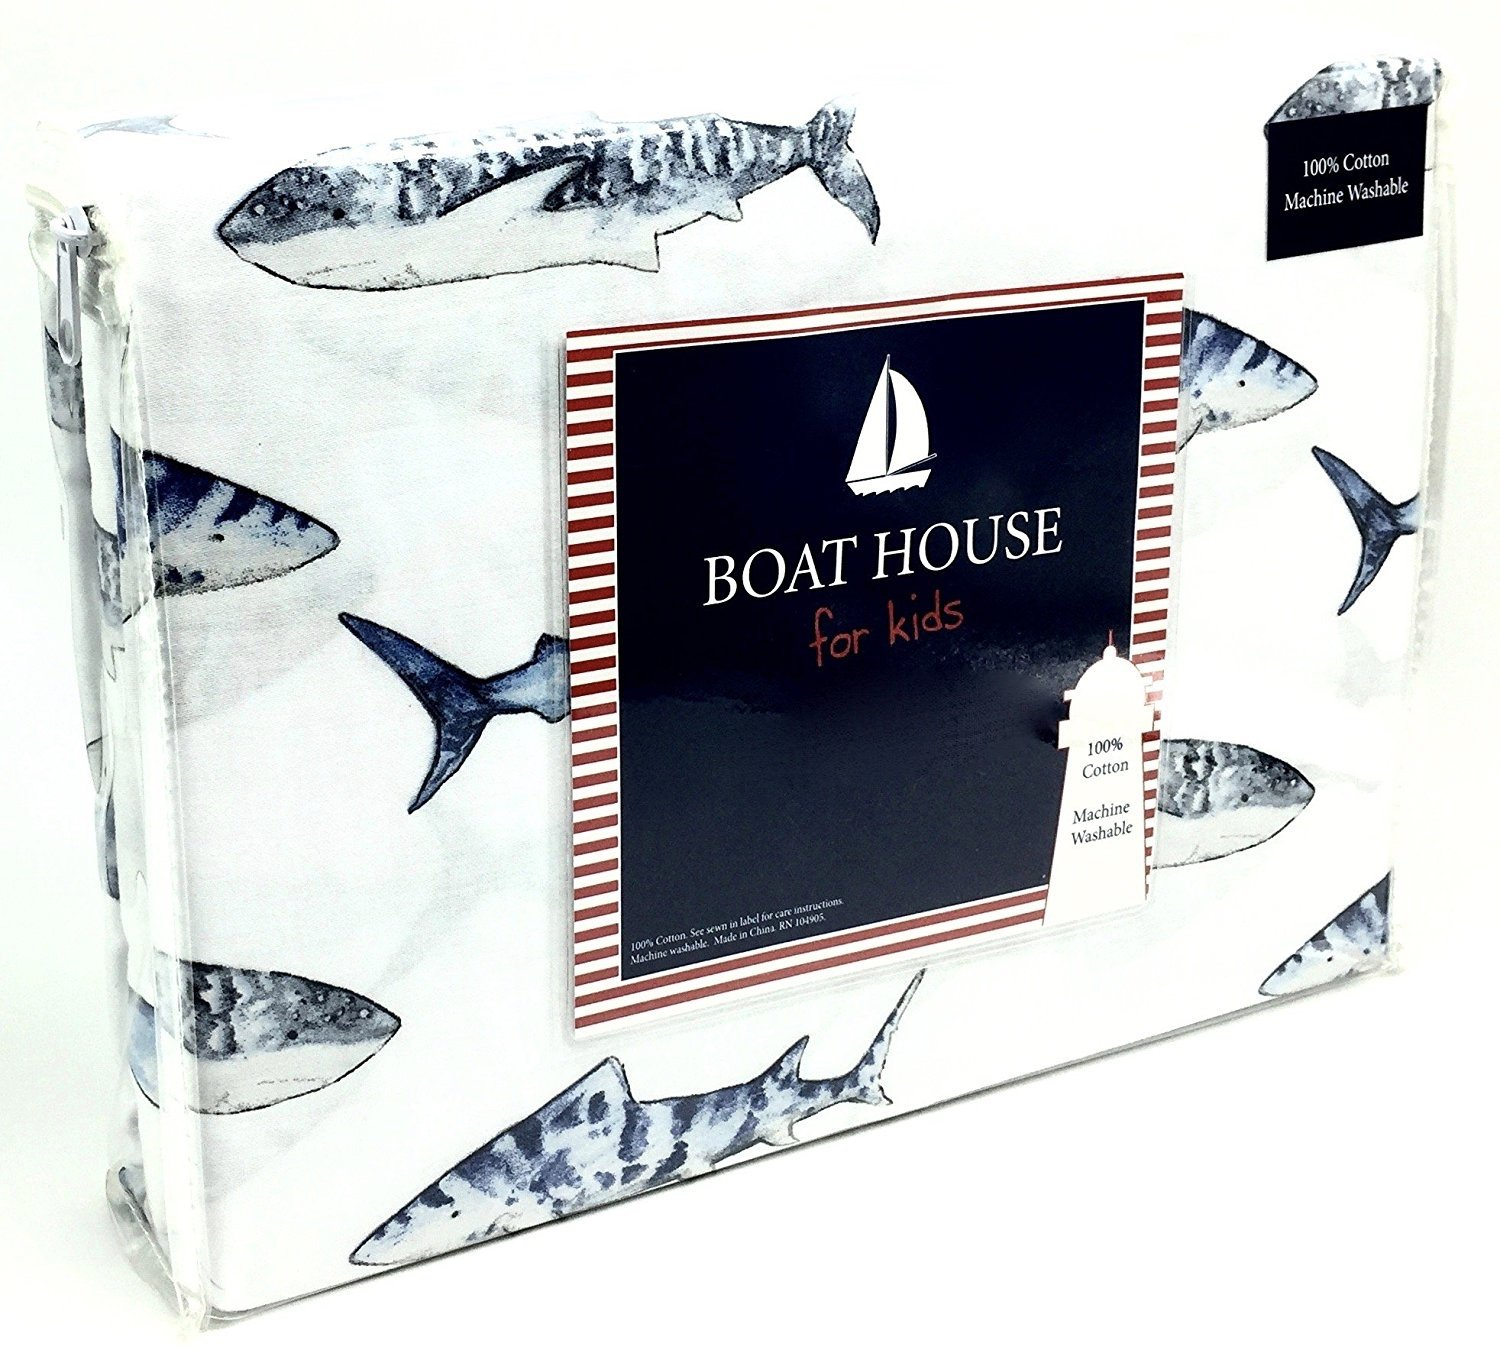 Boat House Shark School Children's All Cotton FULL Size 4-Piece Sheet Set